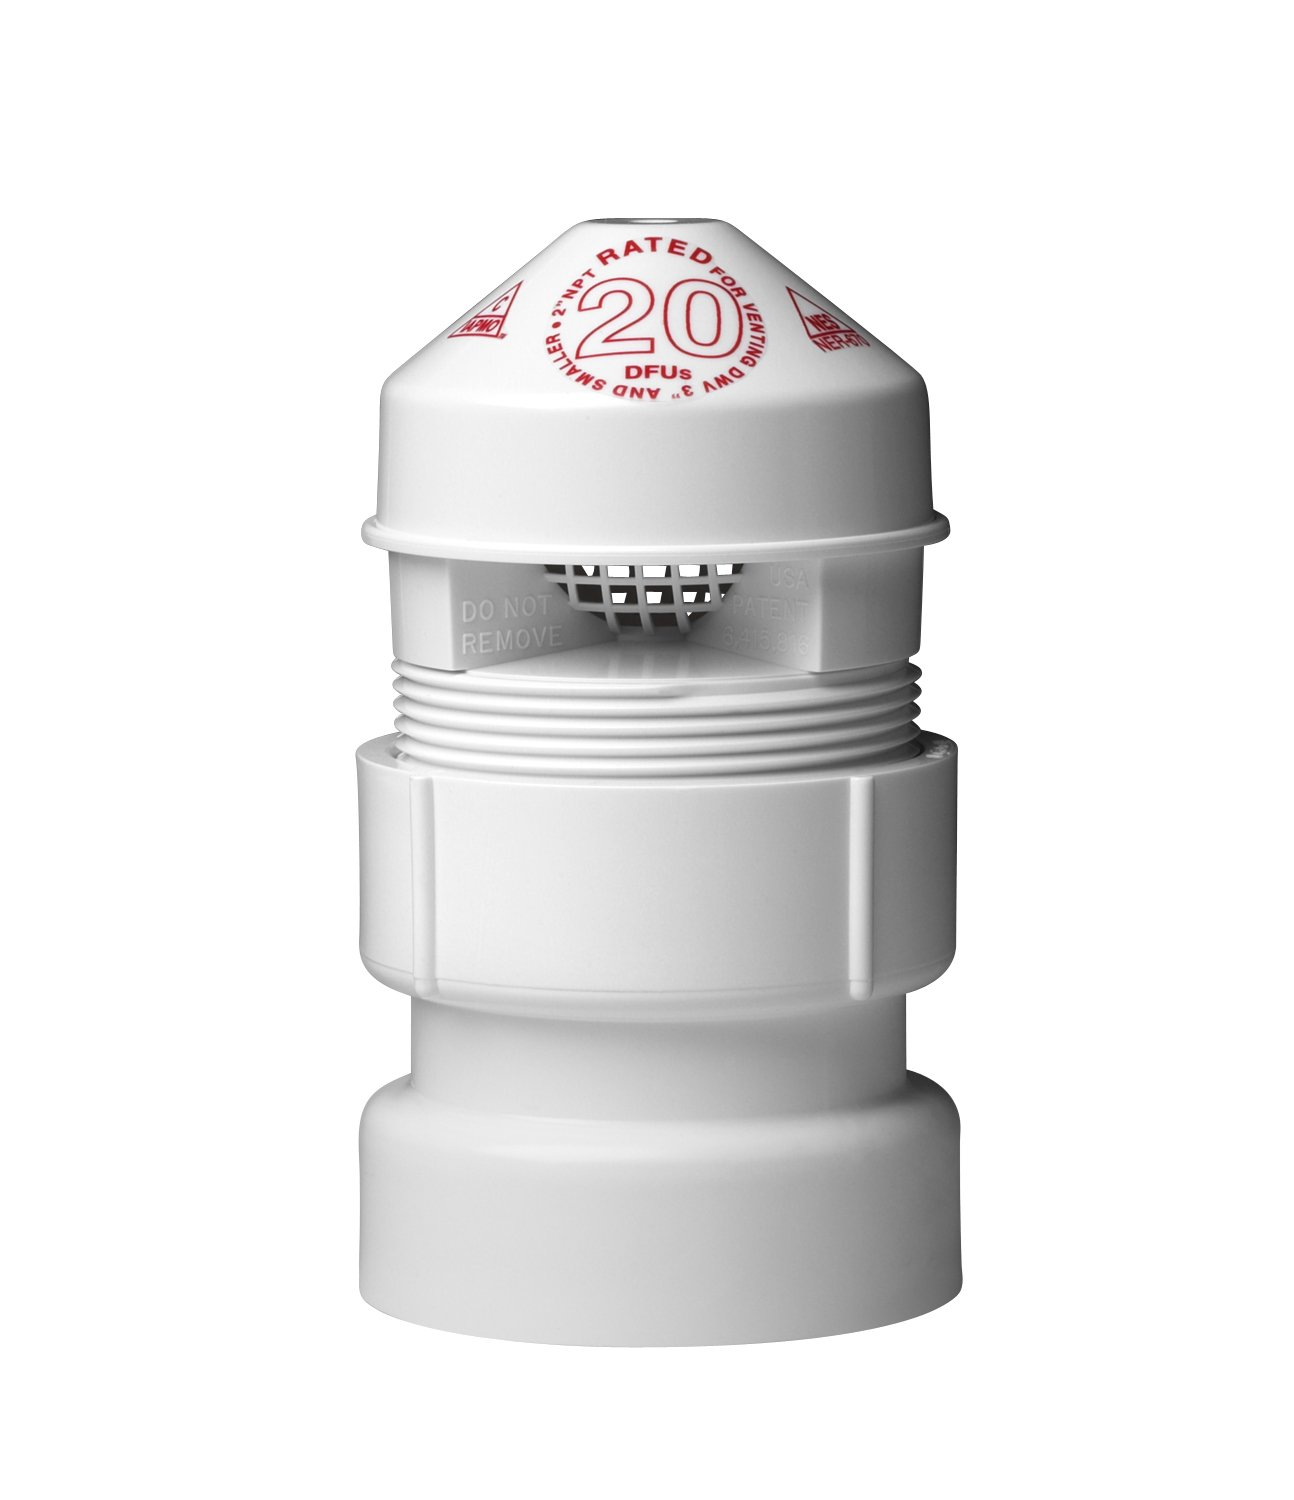 Oatey 39017 SURE-VENT AIR ADM VALVE, 1-1/2-Inch by 2-Inch, White by Oatey